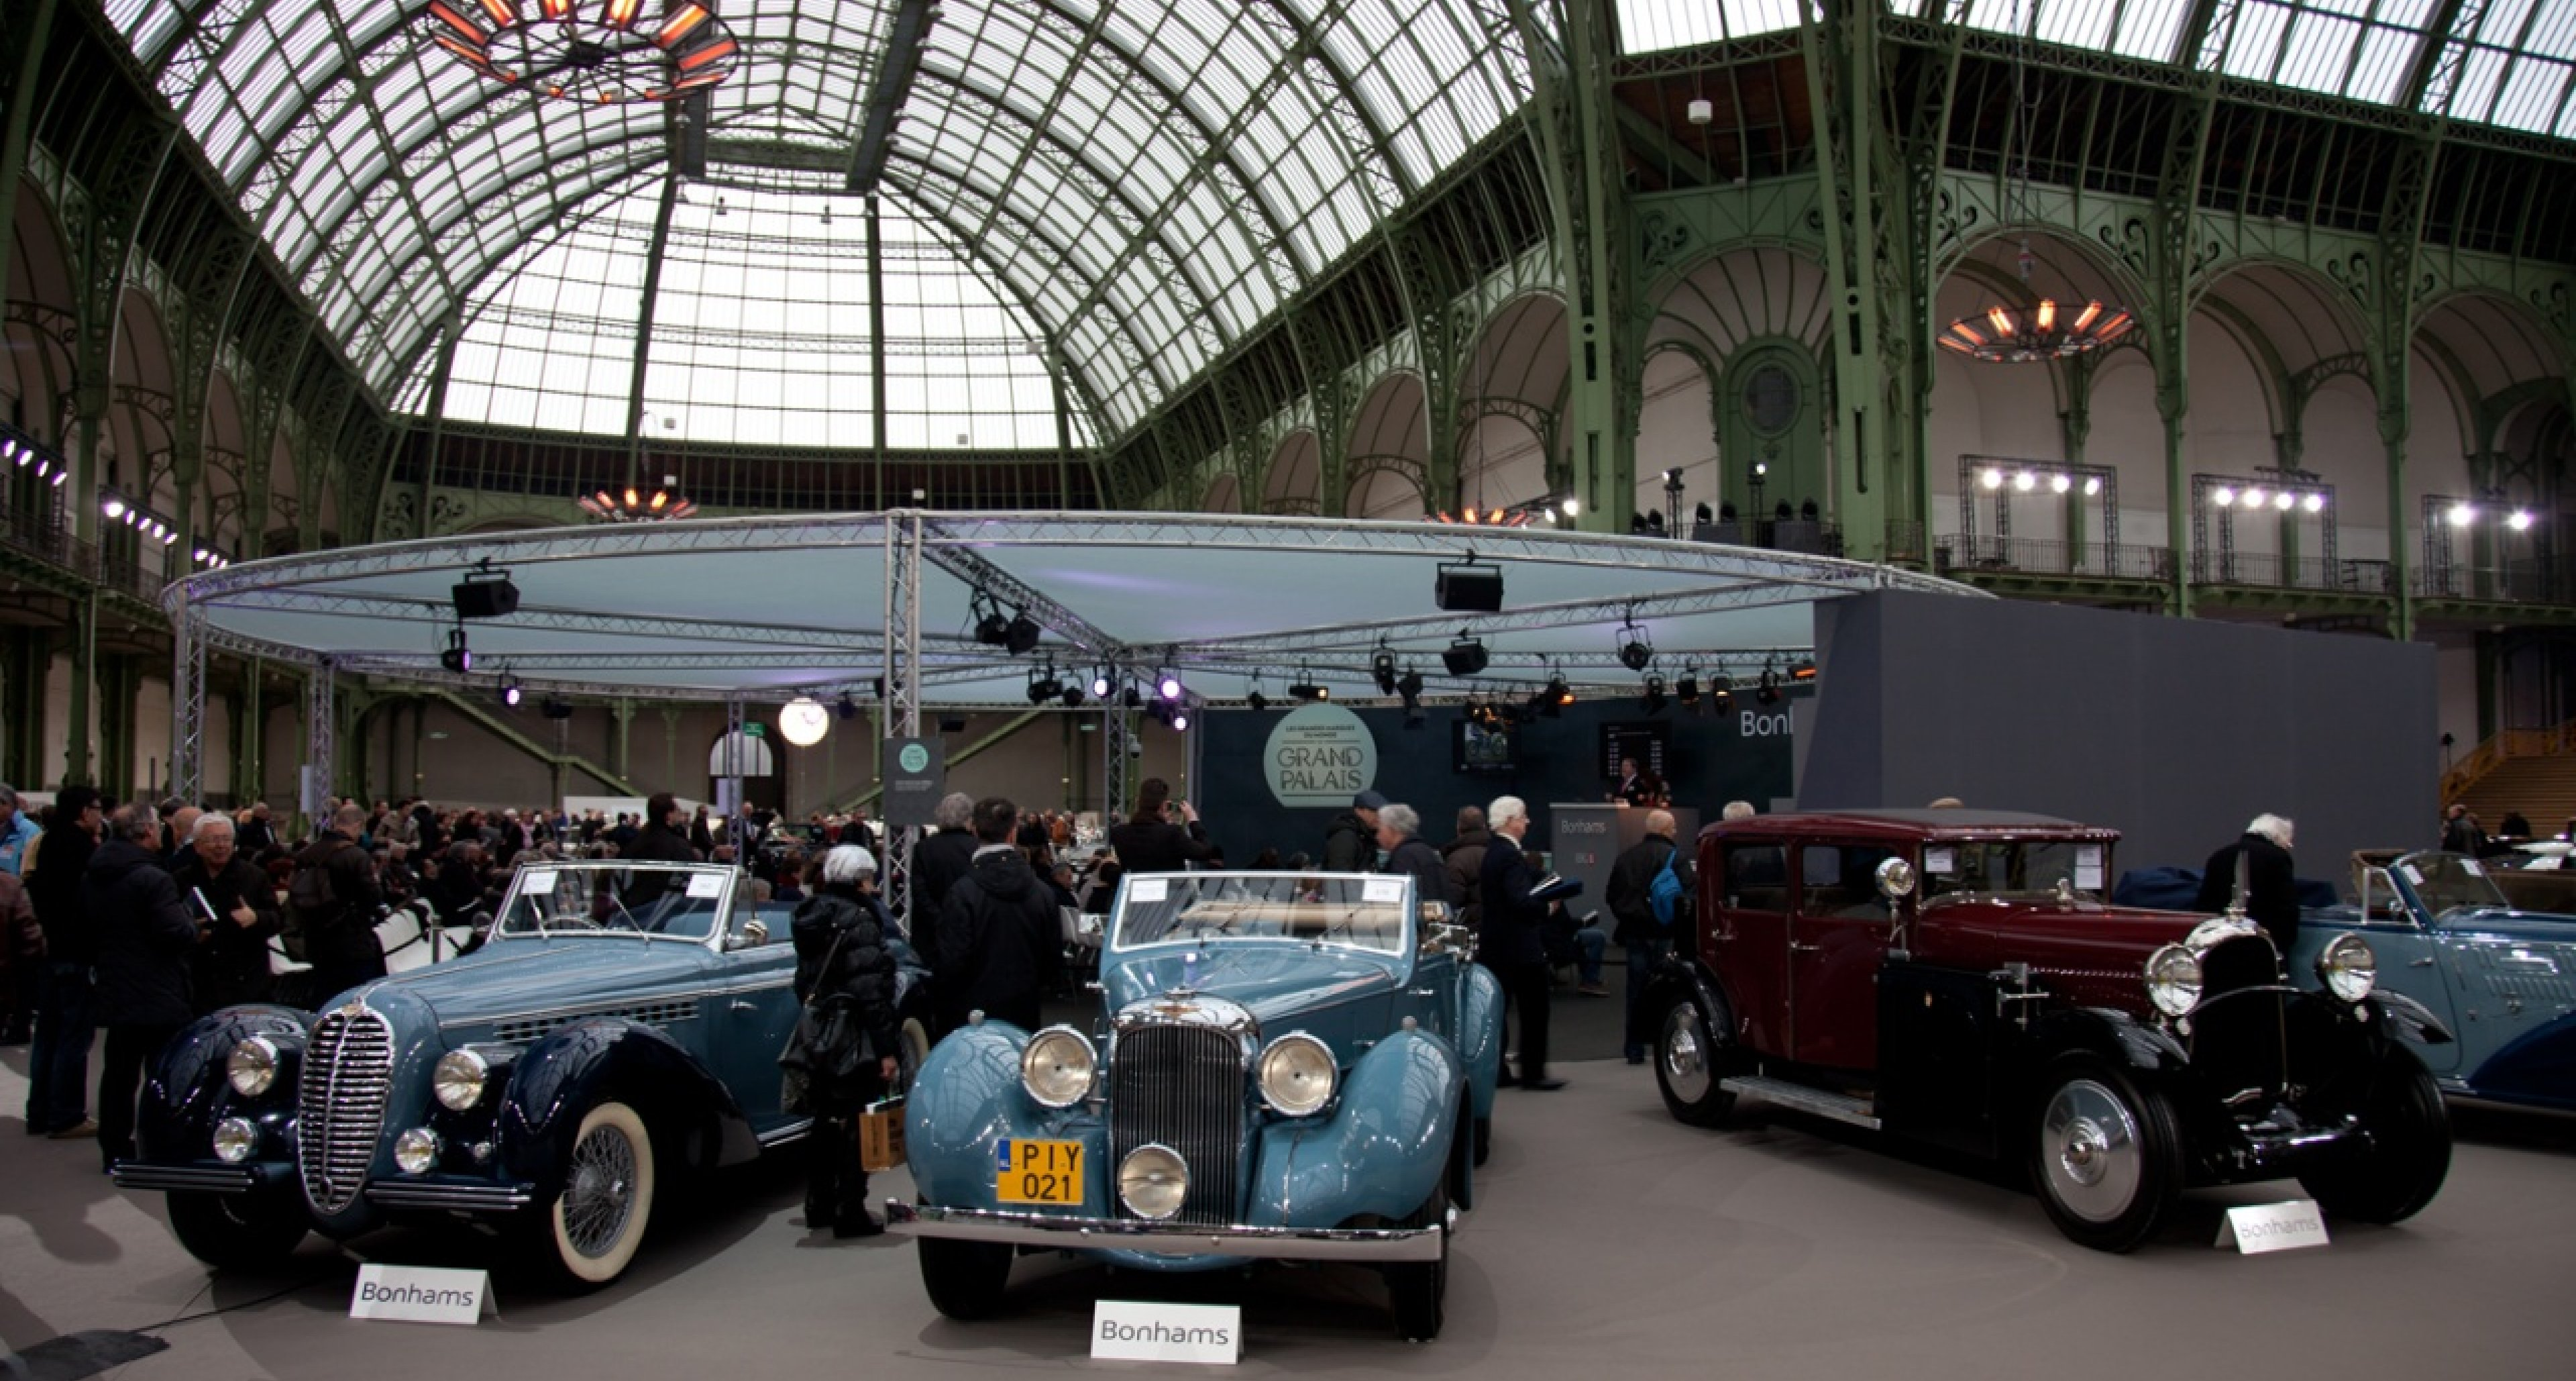 Stars of the Bonhams sale: 1929 Bugatti Type 35 B (sold for € 1,610,000) and 1947 Delage D6 (sold for € 1,092,500).